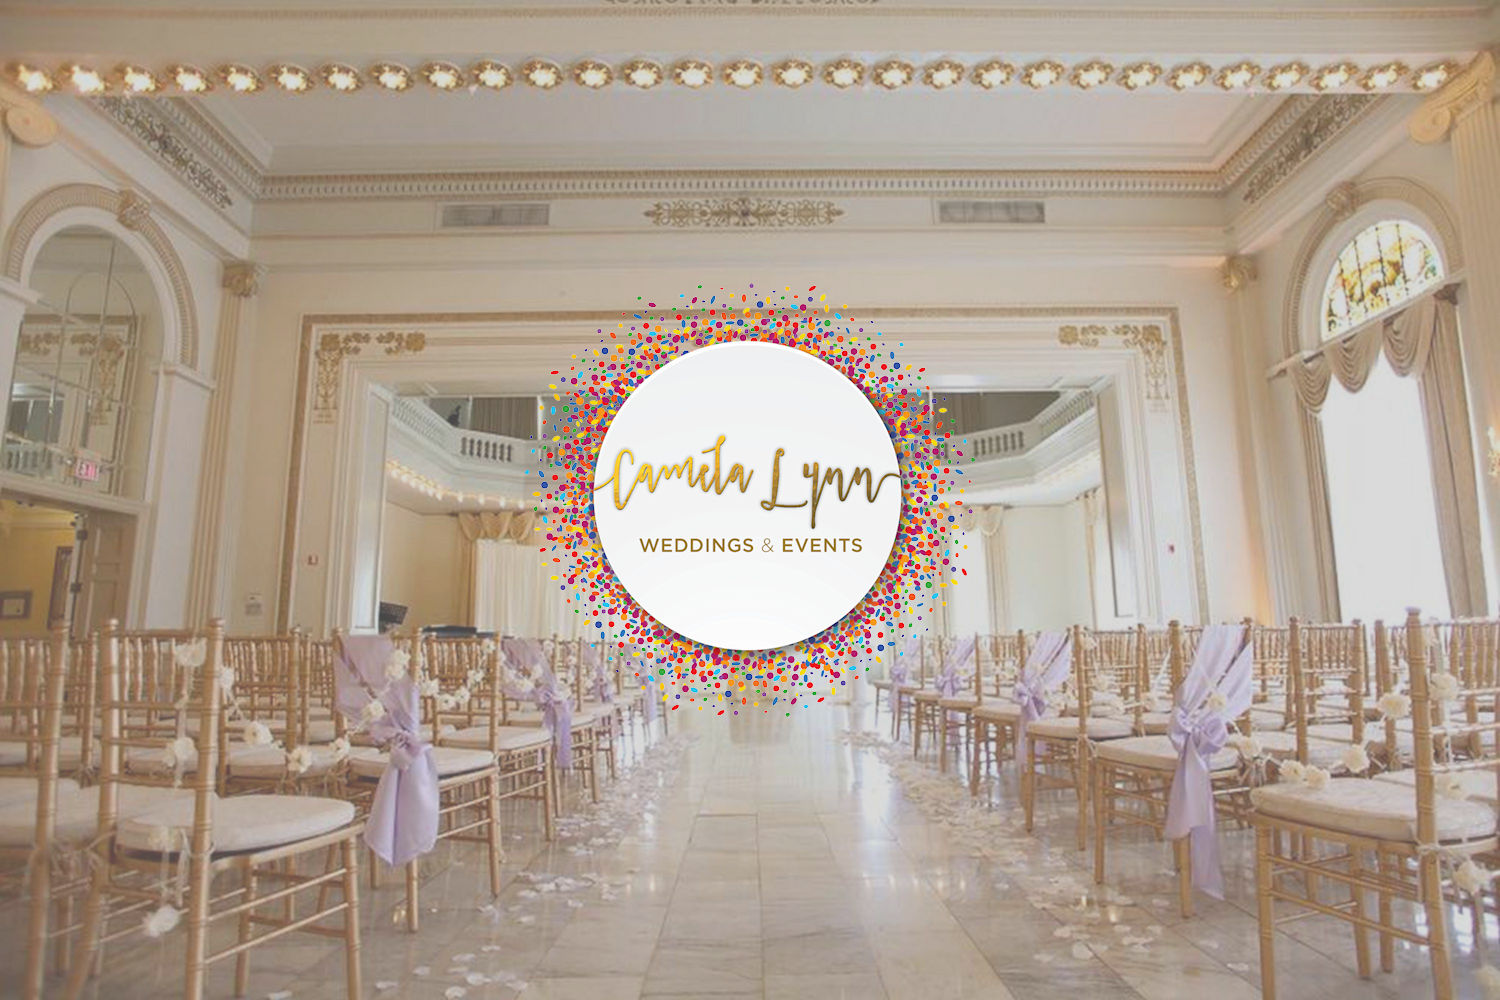 Welcome To Camela Lynn Weddings & Events!